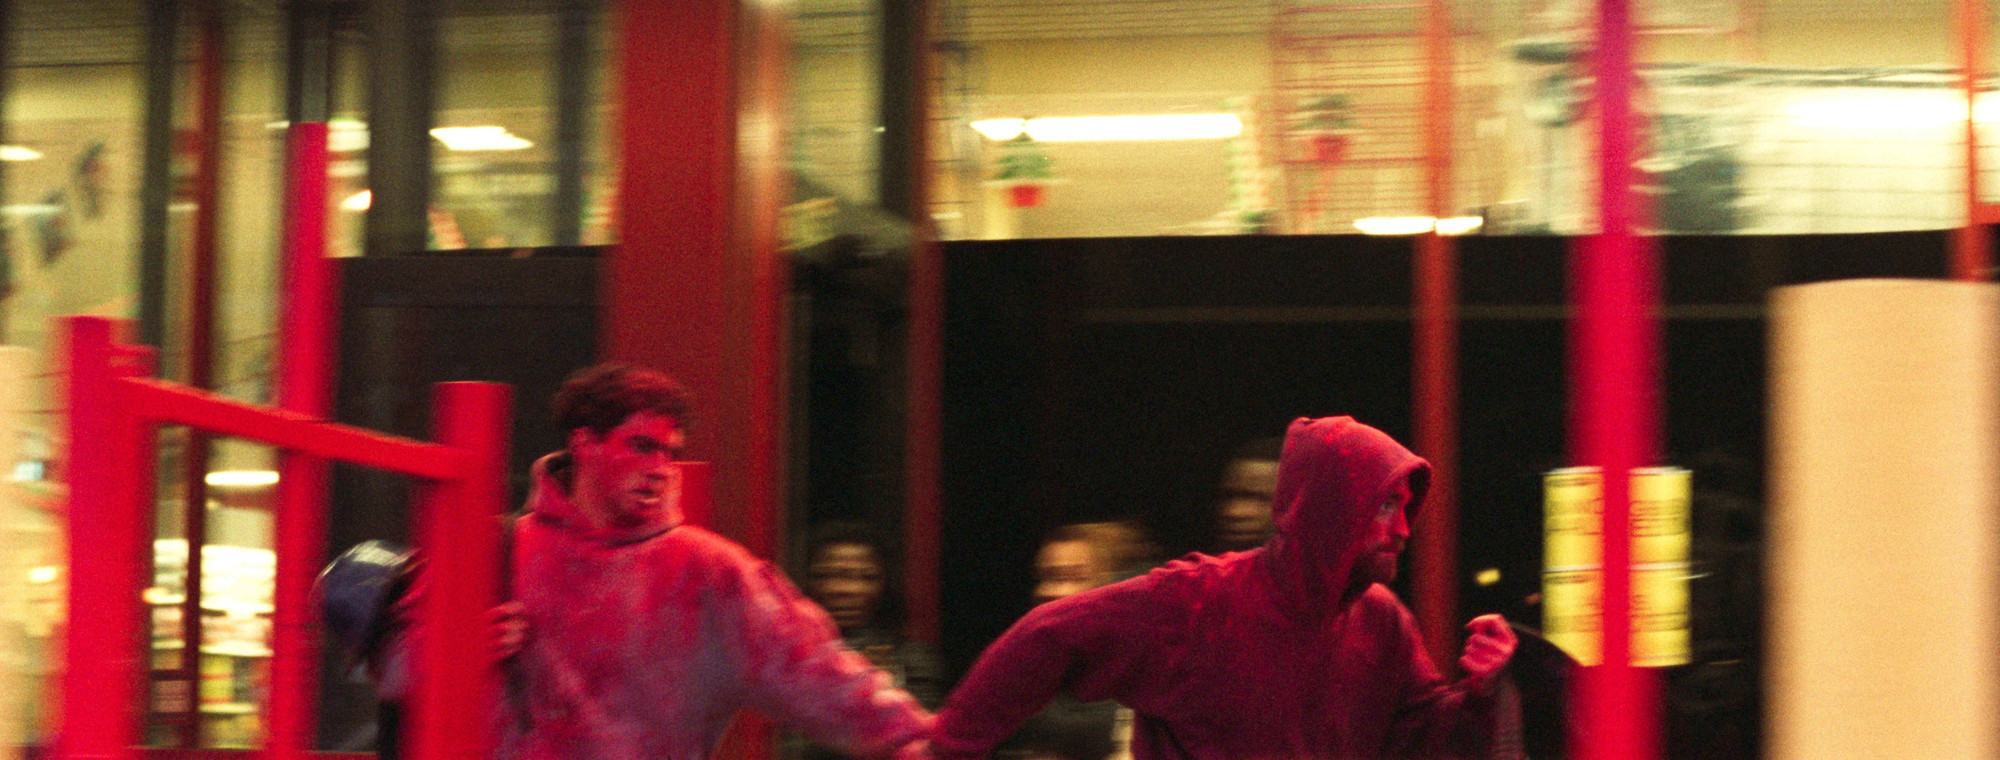 Good Time. 2017. USA. Directed by Josh Safdie, Benny Safdie. Courtesy of A24 Films